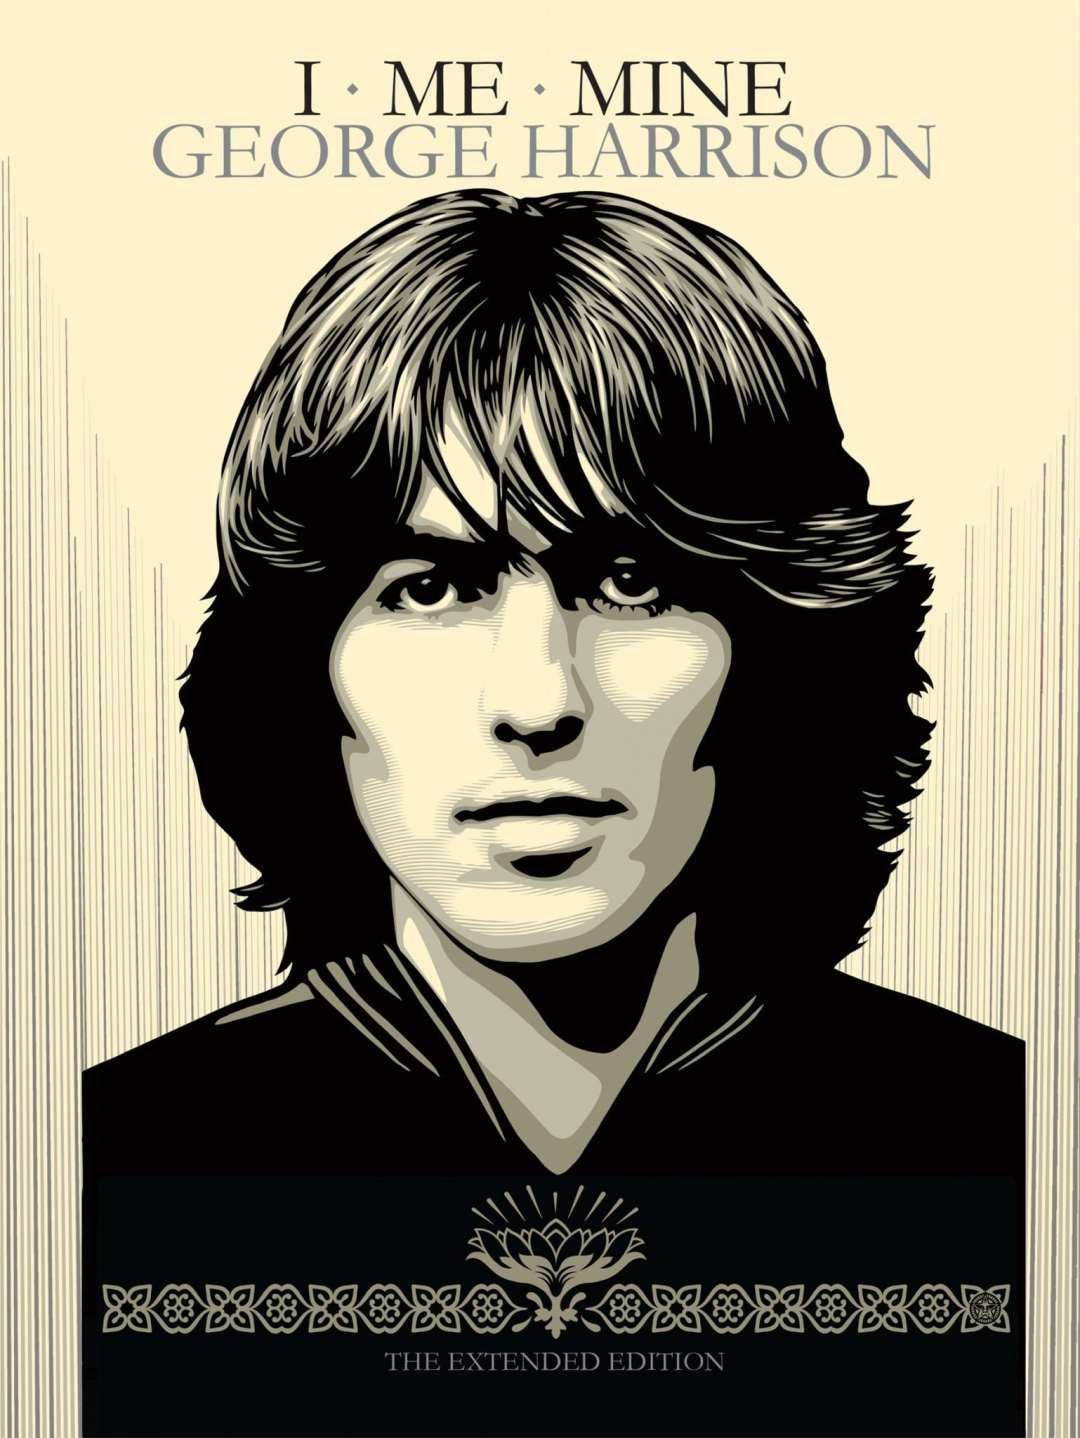 George_Harrison_I_ME_MINE_COVER_M